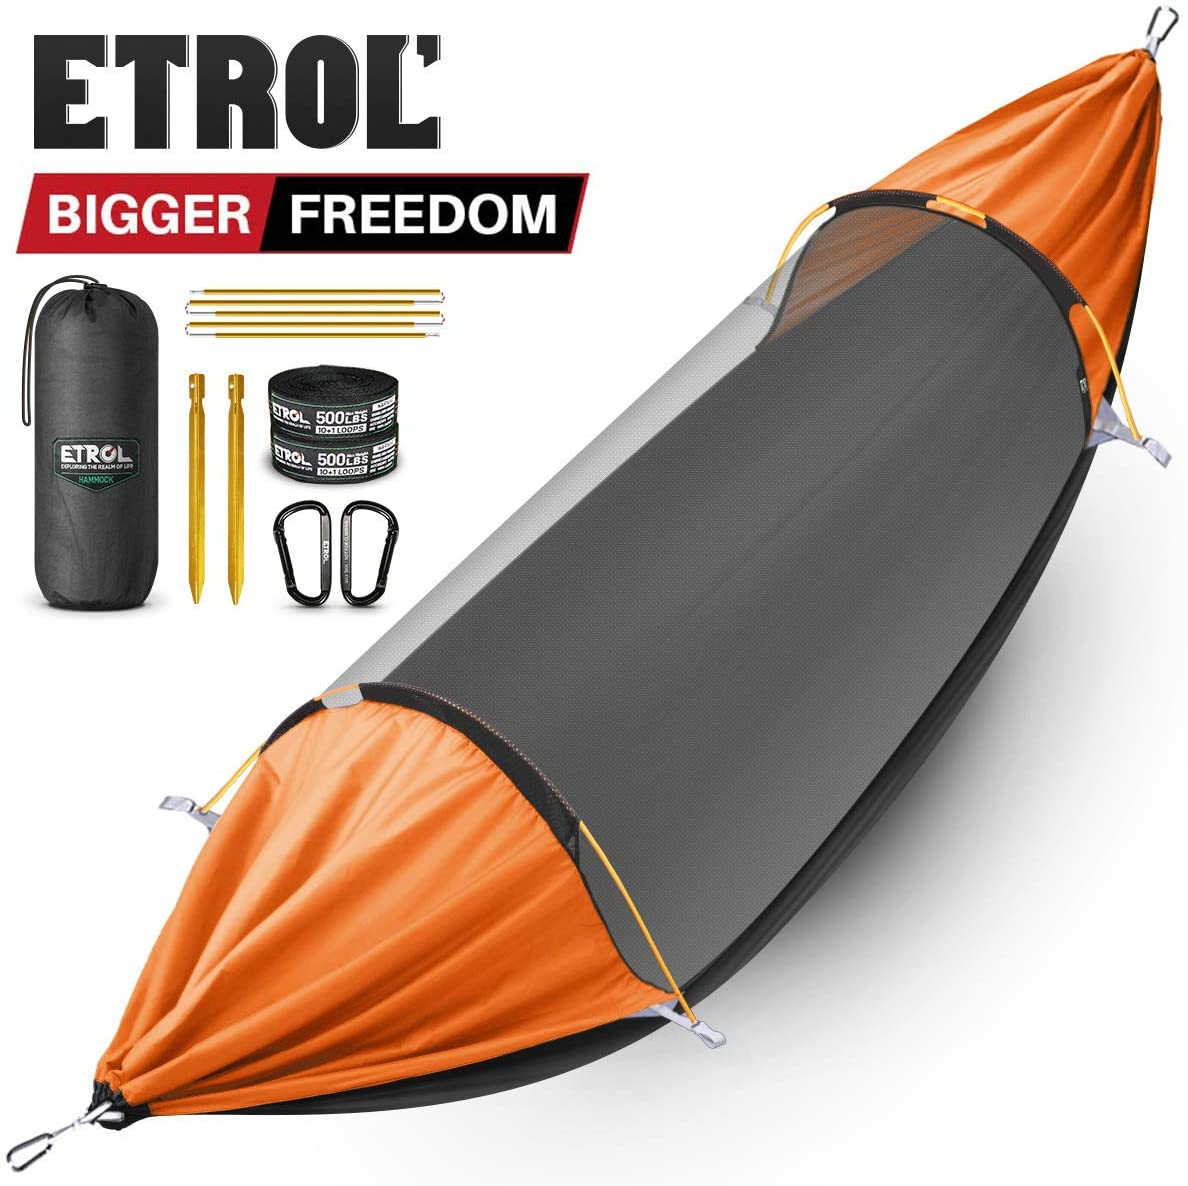 Camping_Hammock_with_Mosquito_Net